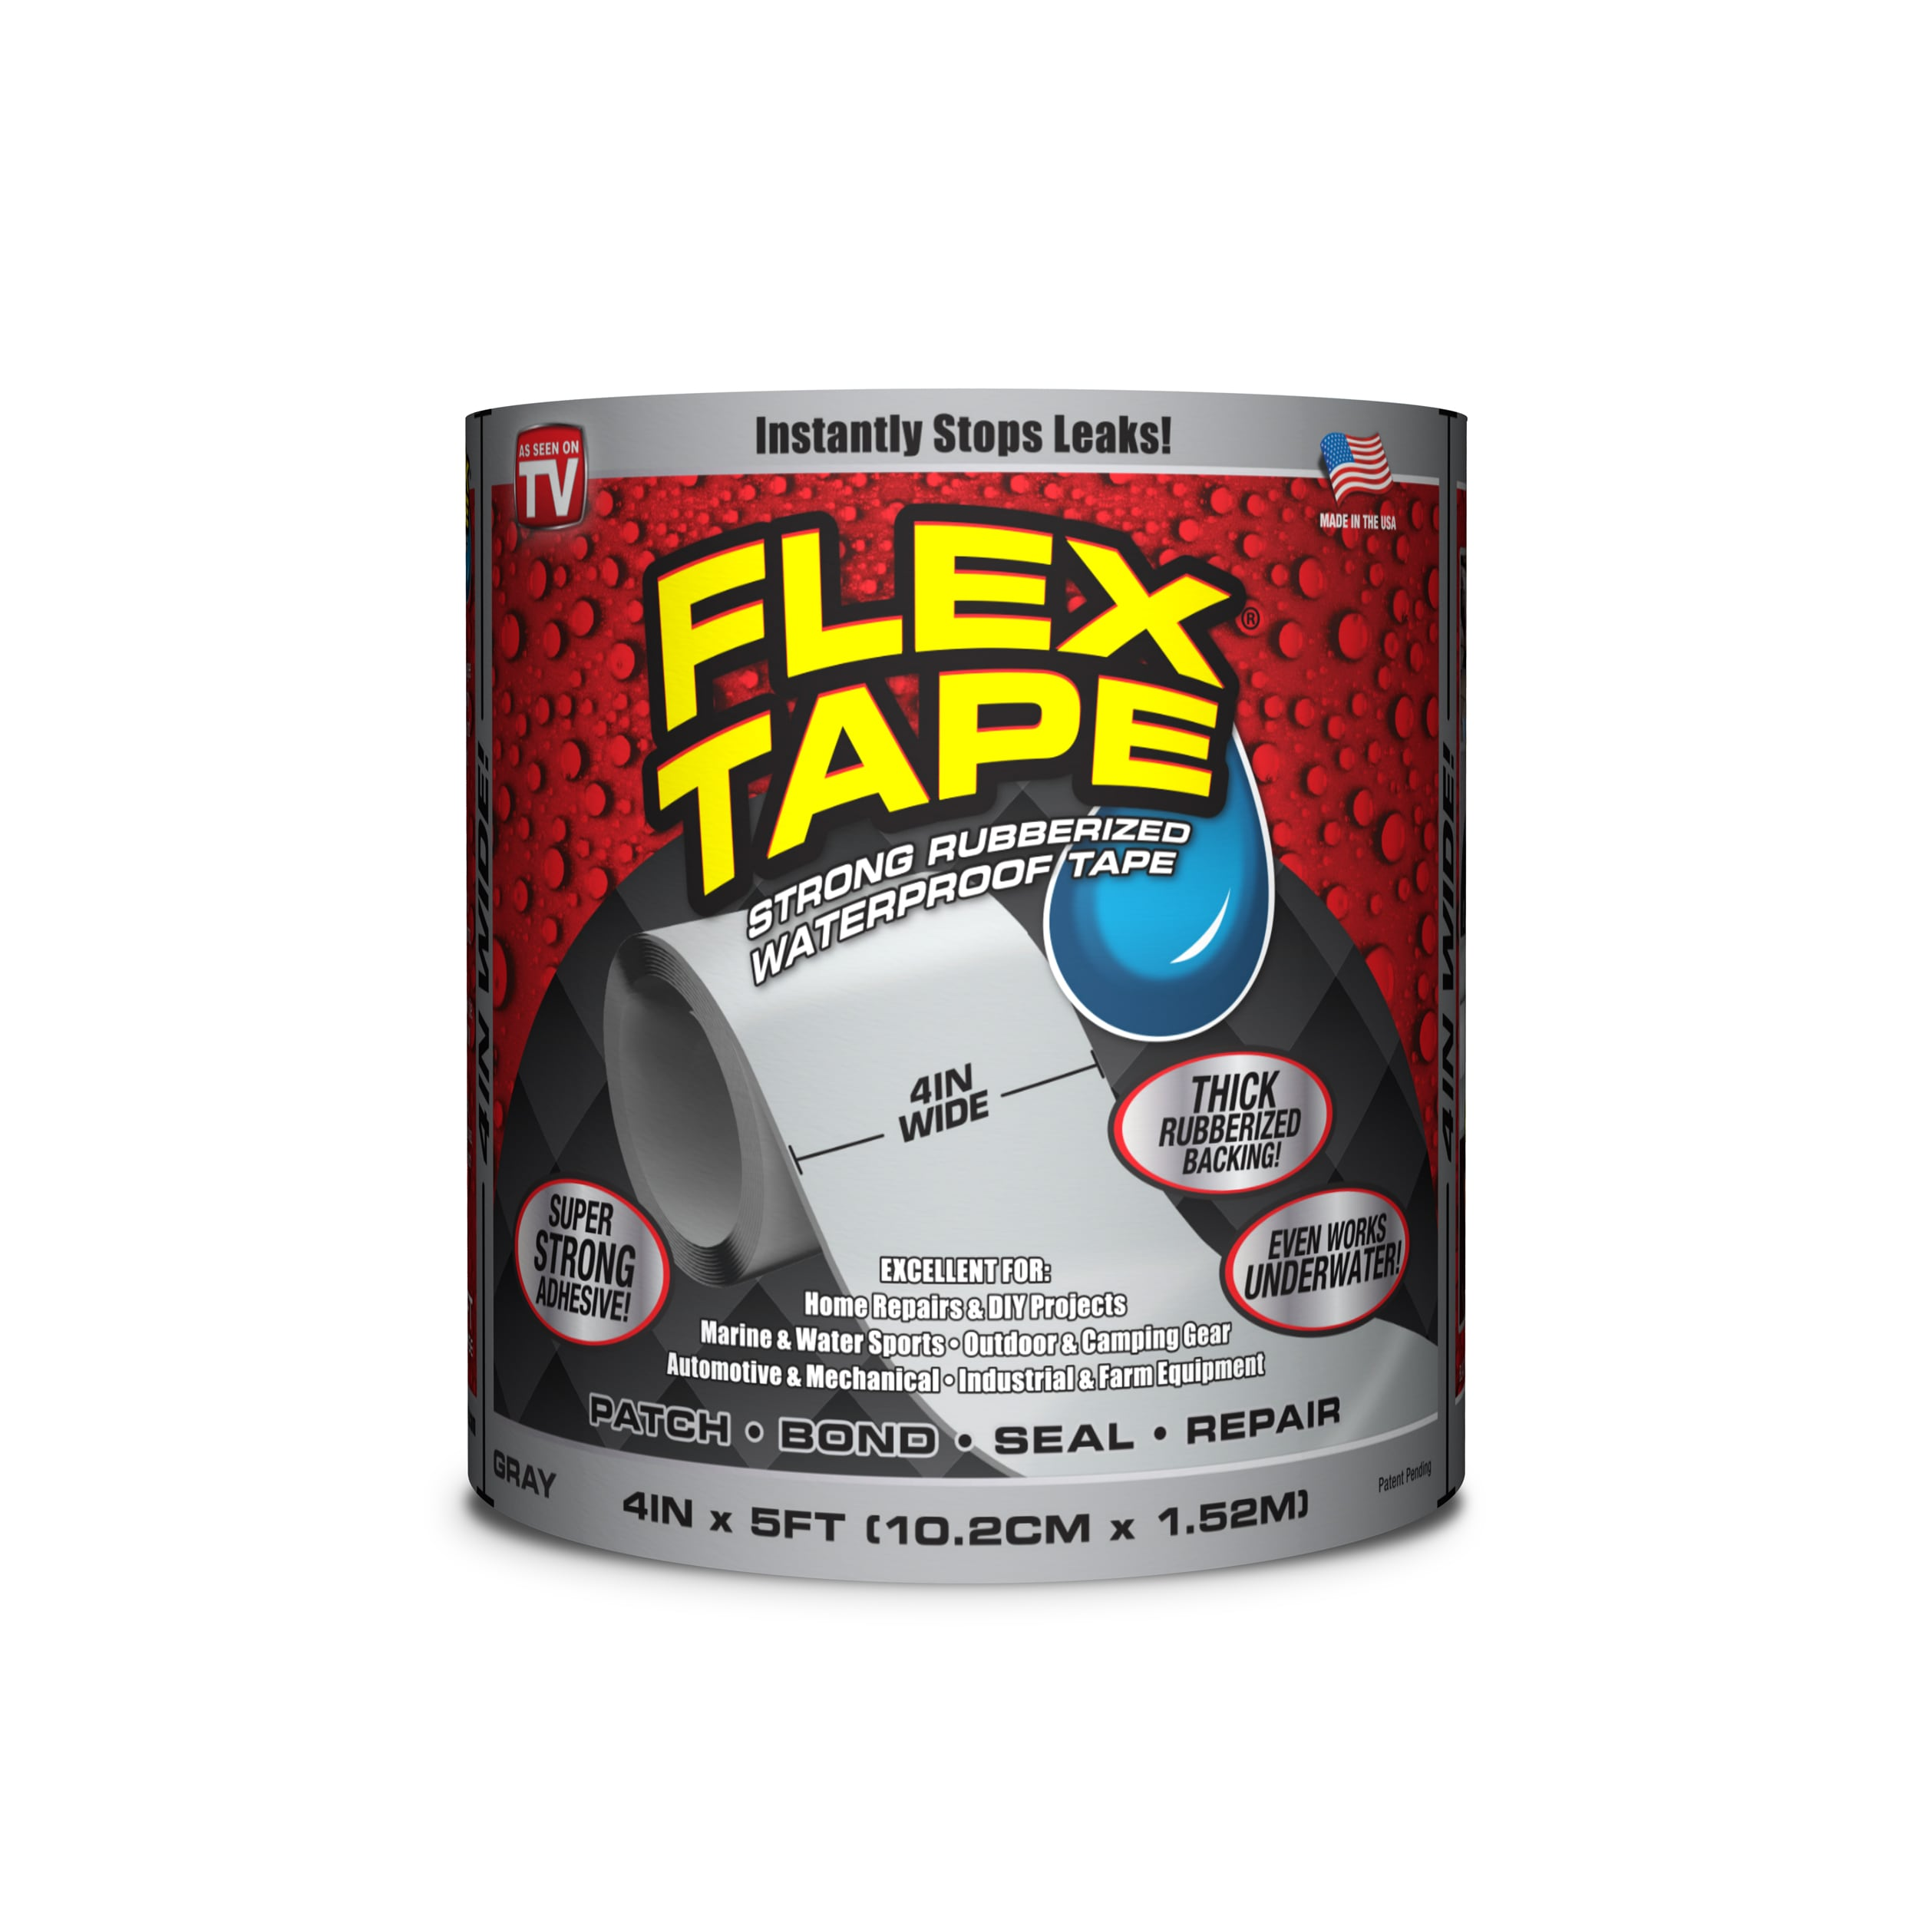 Flex Tape Rubberized Waterproof Tape  4 Inches X 5 Feet